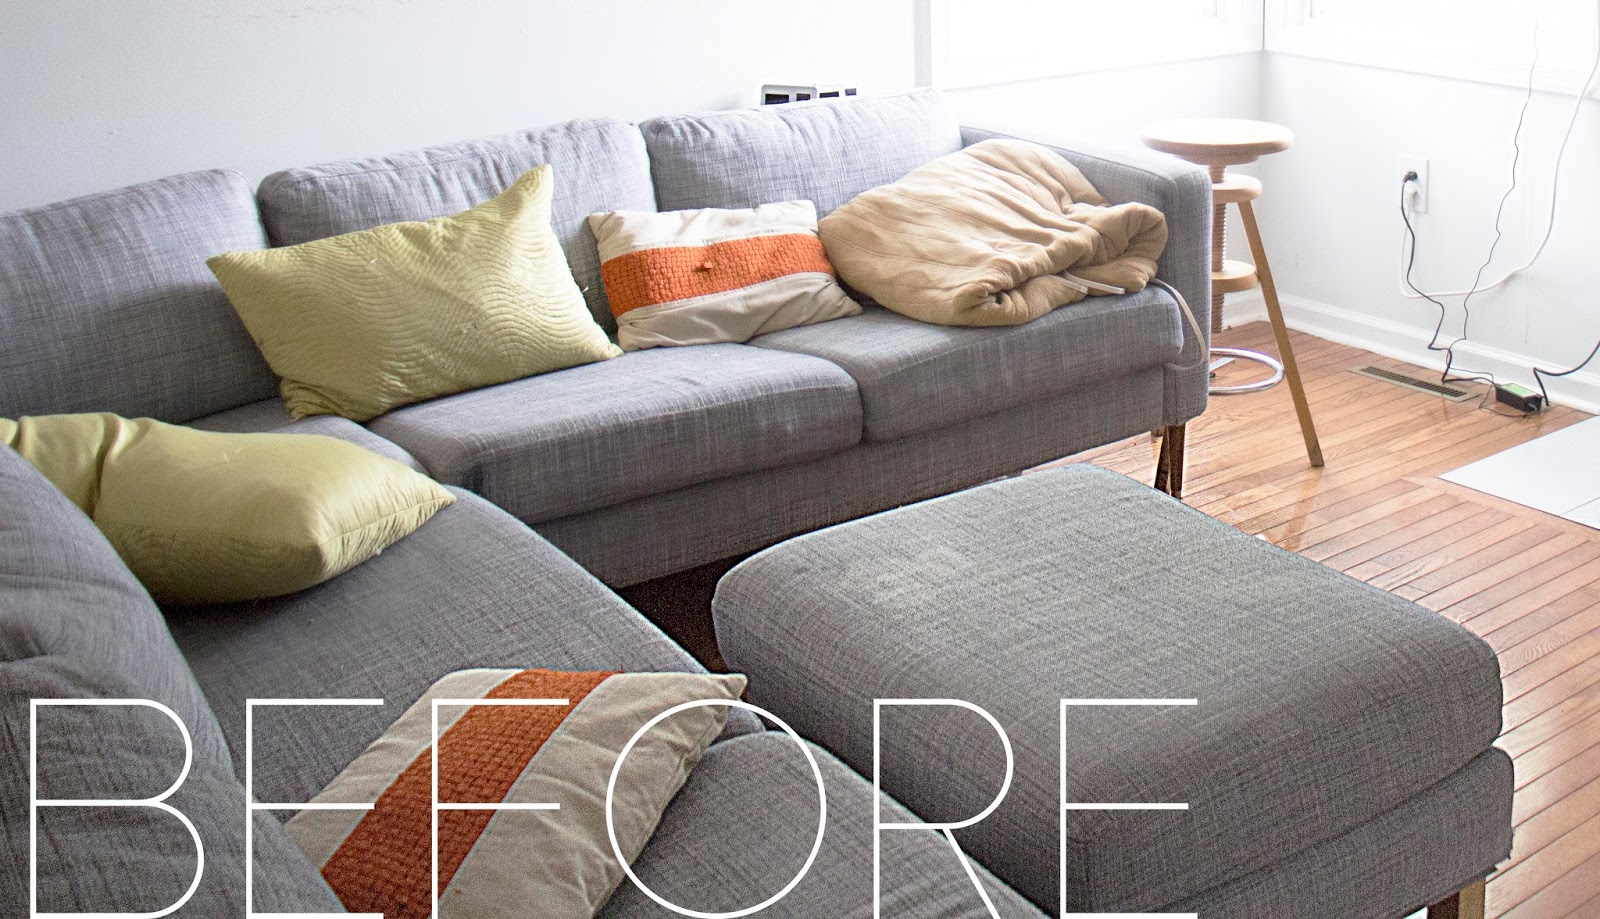 Grosgrain Finally AFFORDABLE IKEA sofa slipcovers